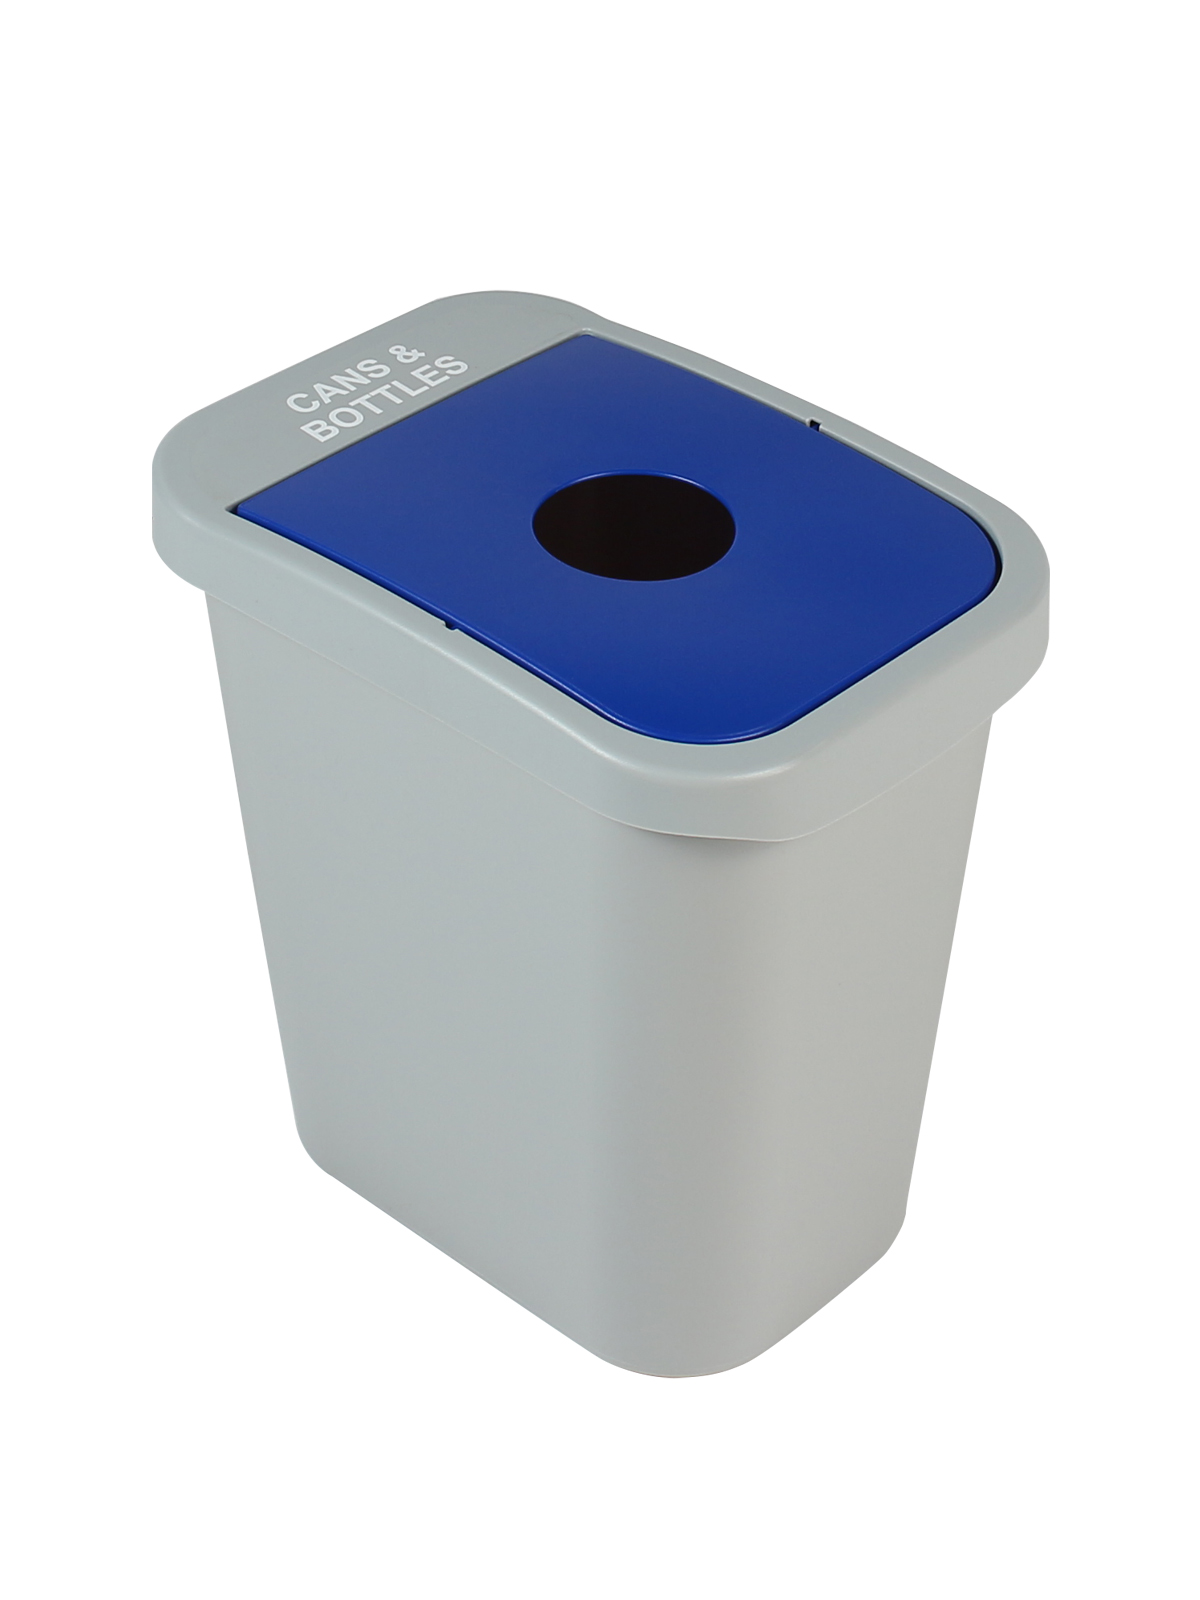 BILLI BOX - SINGLE 7 G - CIRCLE - GREY | BLUE - CANS & BOTTLES